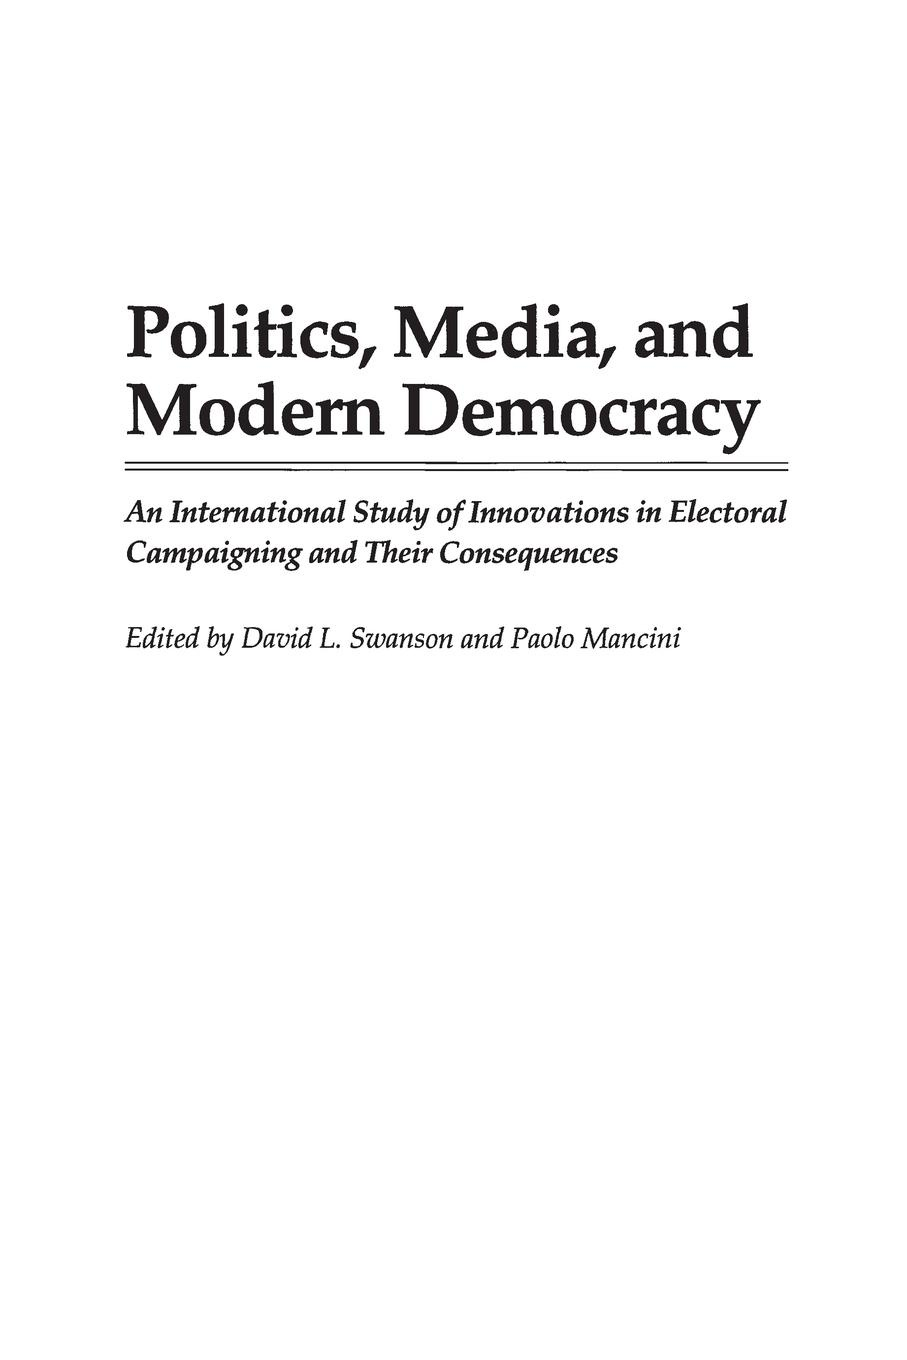 Paolo Mancini, David Swanson Politics, Media, and Modern Democracy. An International Study of Innovations in Electoral Campaigning and Their Consequences john ishiyama t comparative politics principles of democracy and democratization